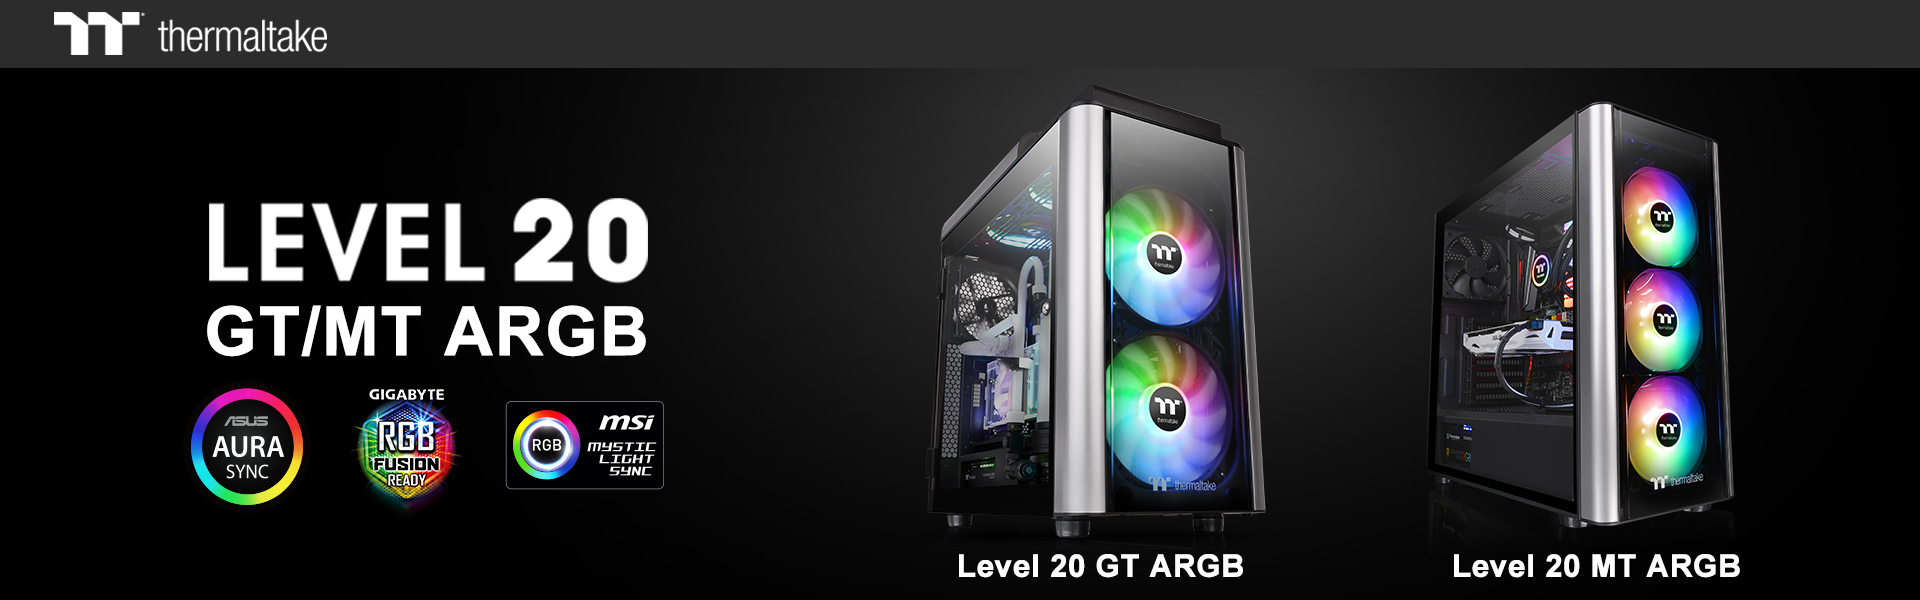 Thermaltake Presents Level 20 MT ARGB and Level 20 GT ARGB Cases